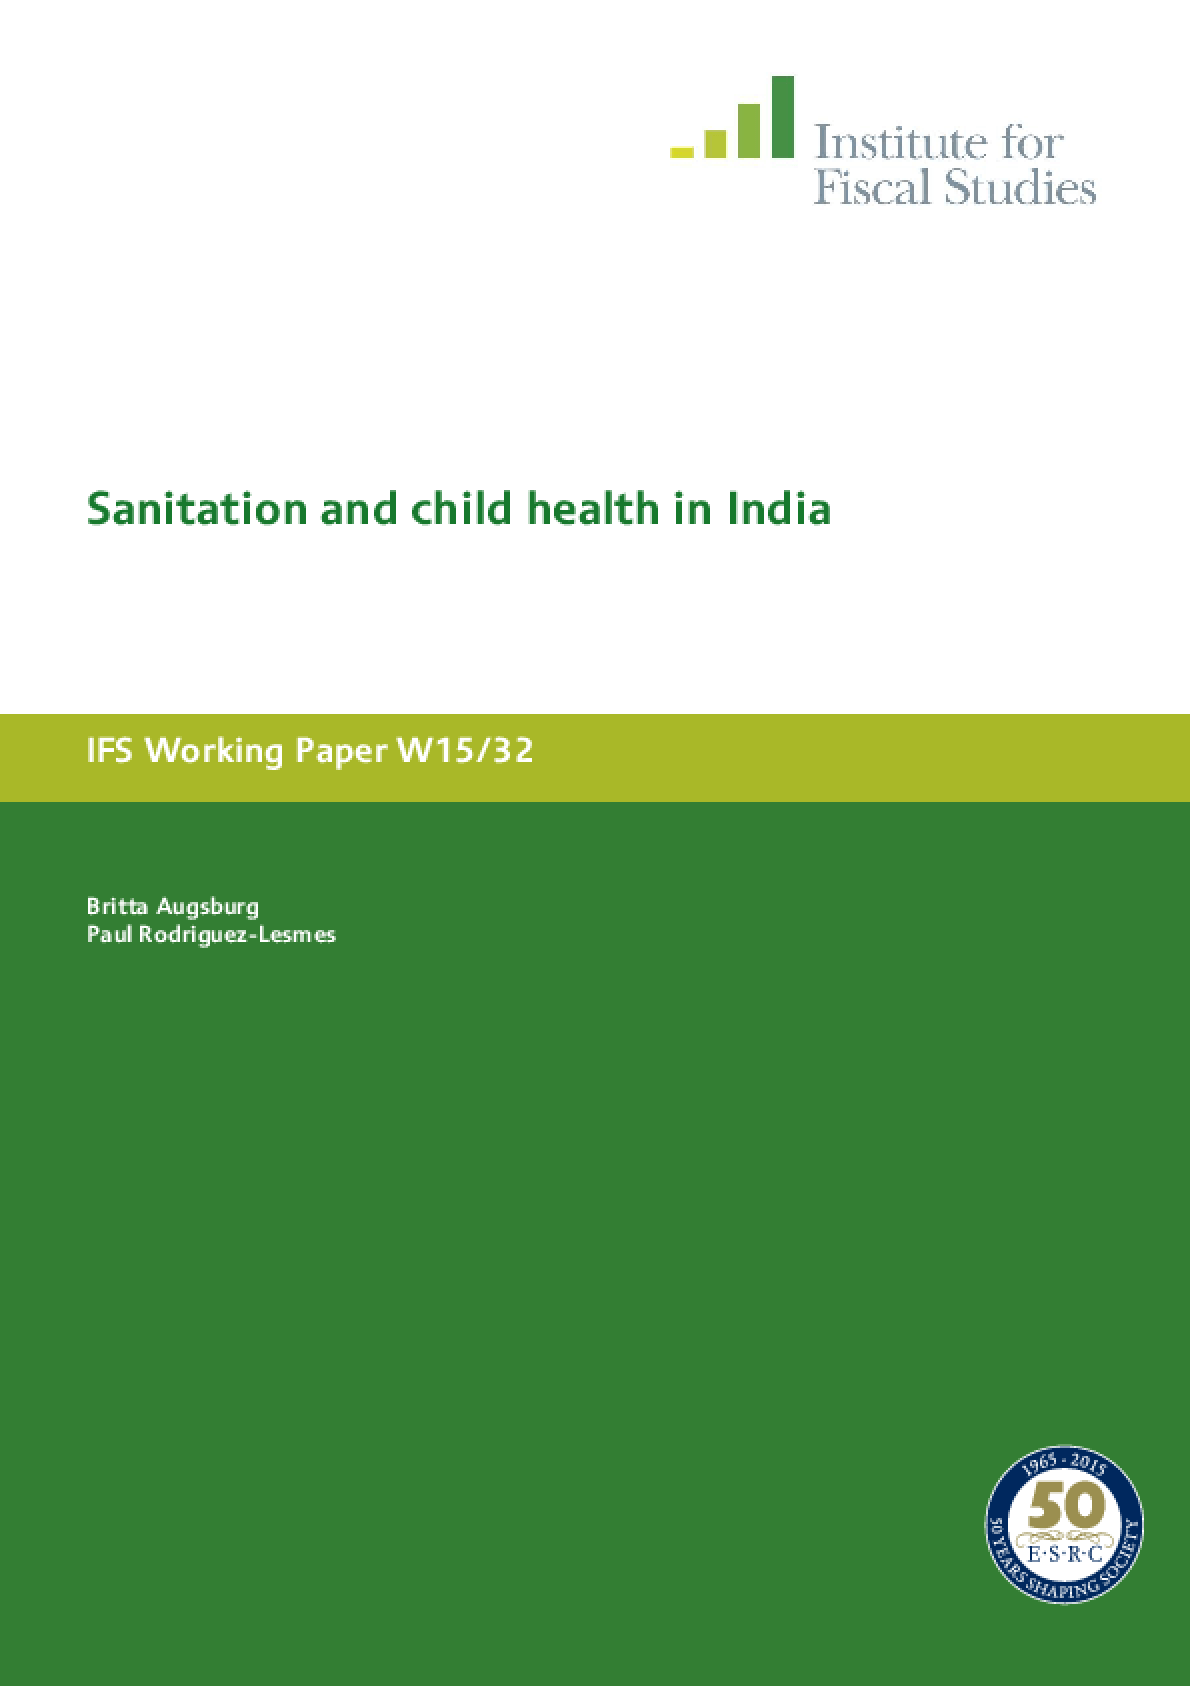 Sanitation and Child Health in India